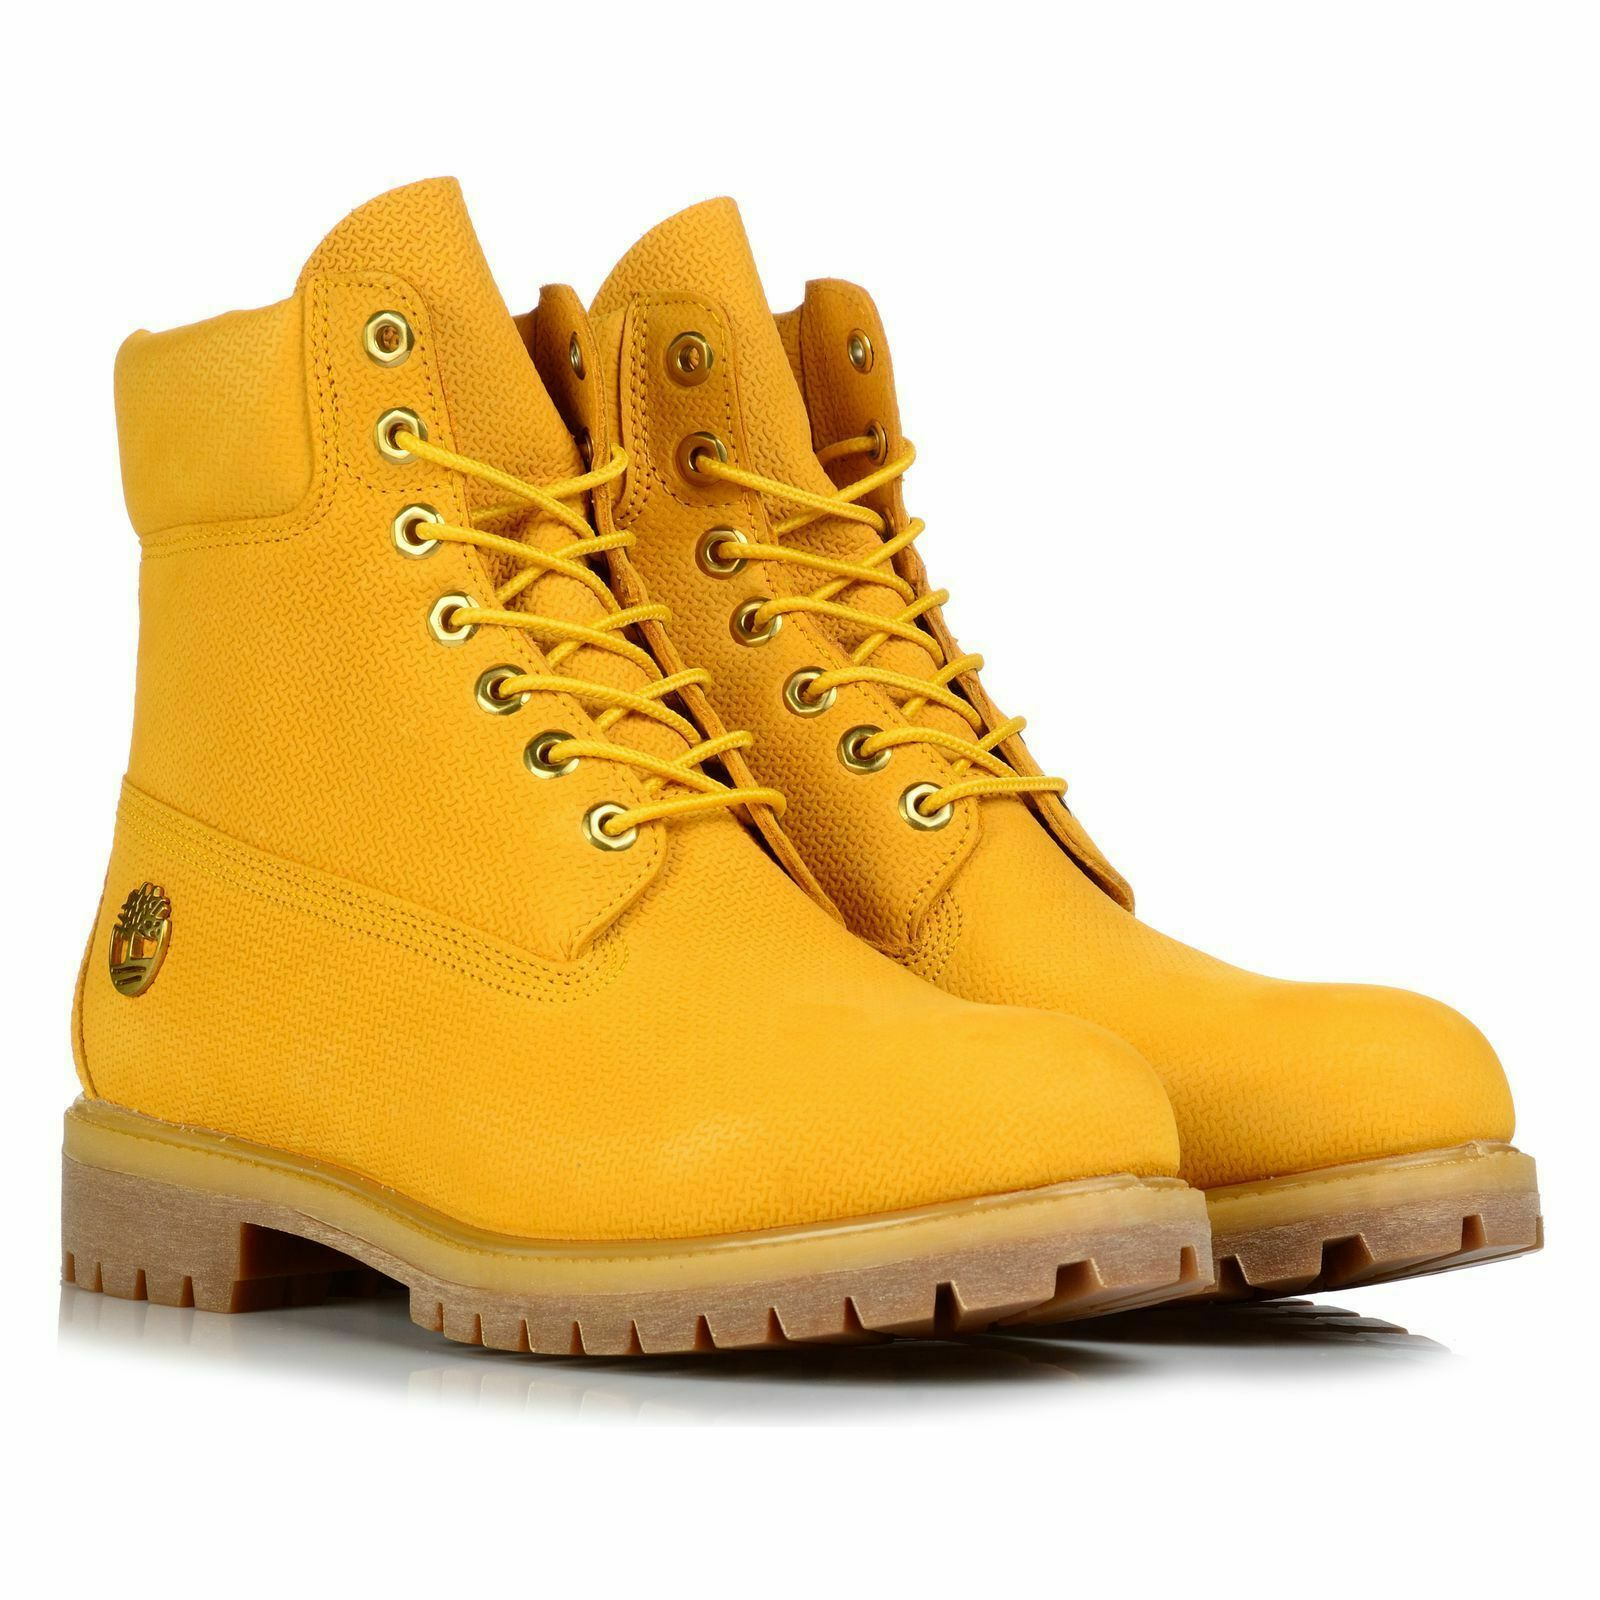 Details about Timberland 15.2cm mens wp classic lace up leather boots show original title